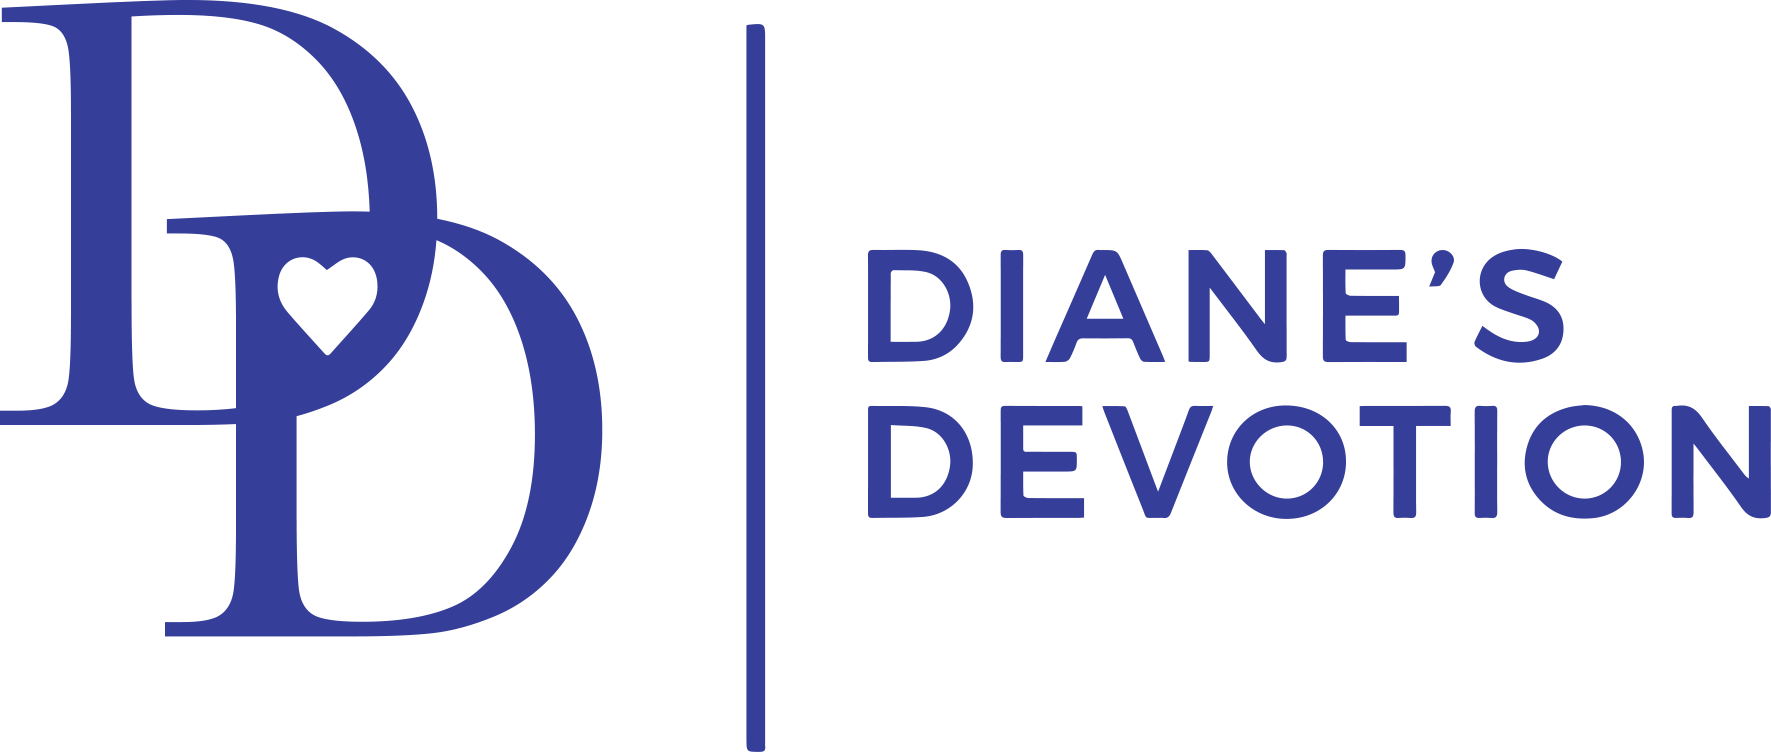 Dianes Devotion Logo